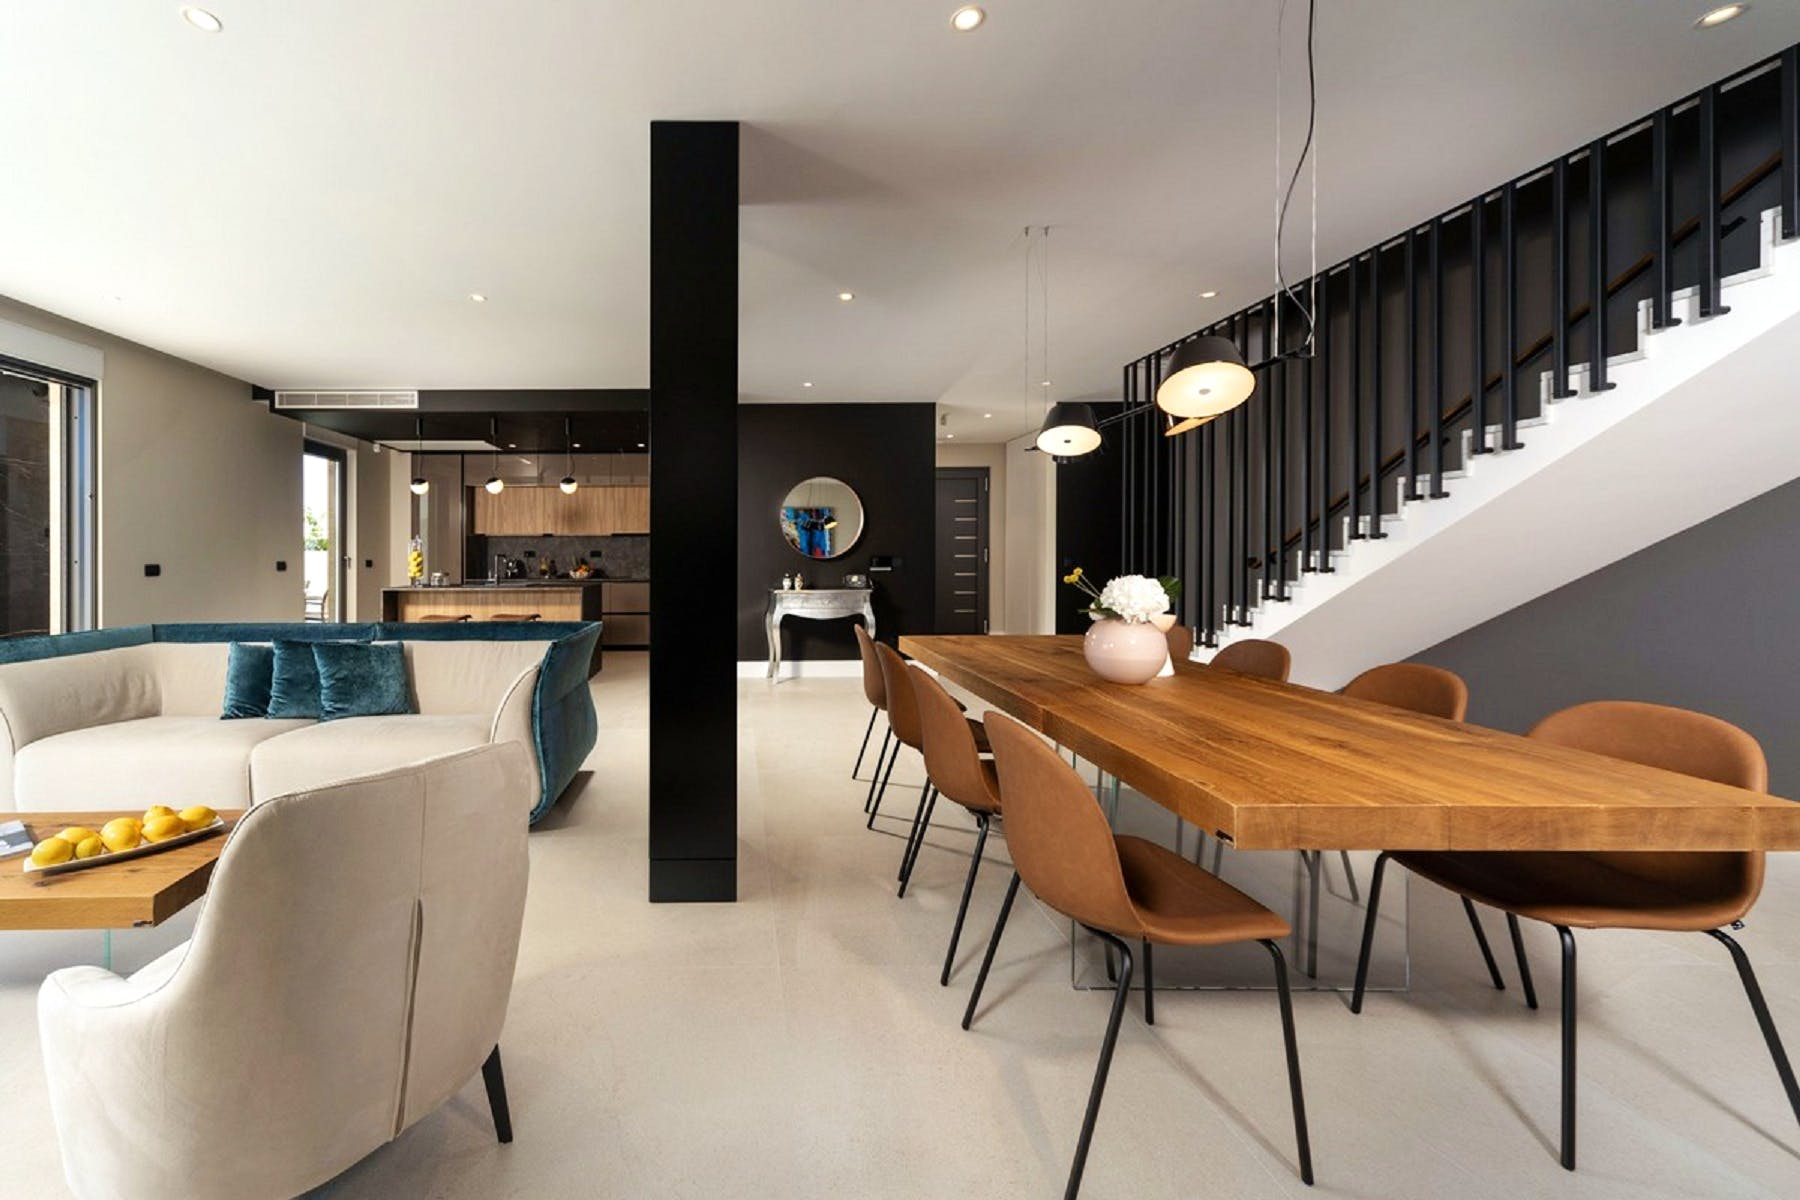 Transition to the dining area